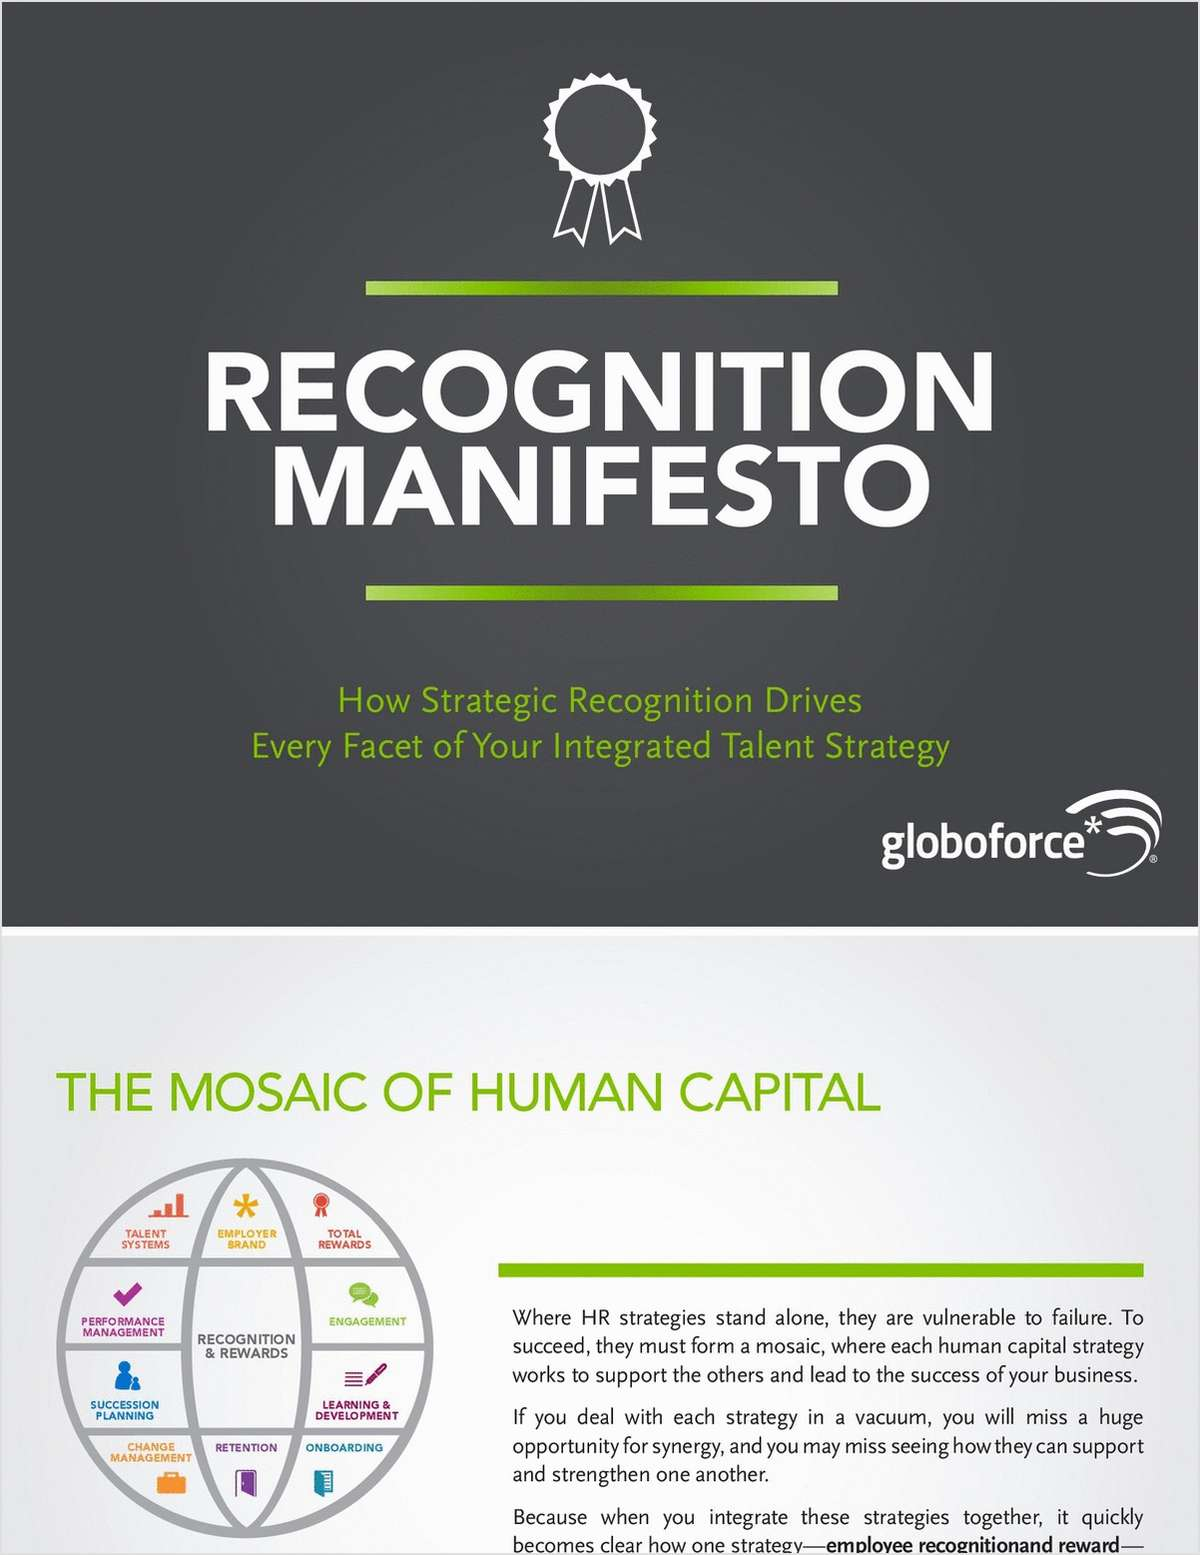 How Employee Recognition Can Drive Every Facet of Your Integrated Talent Strategy